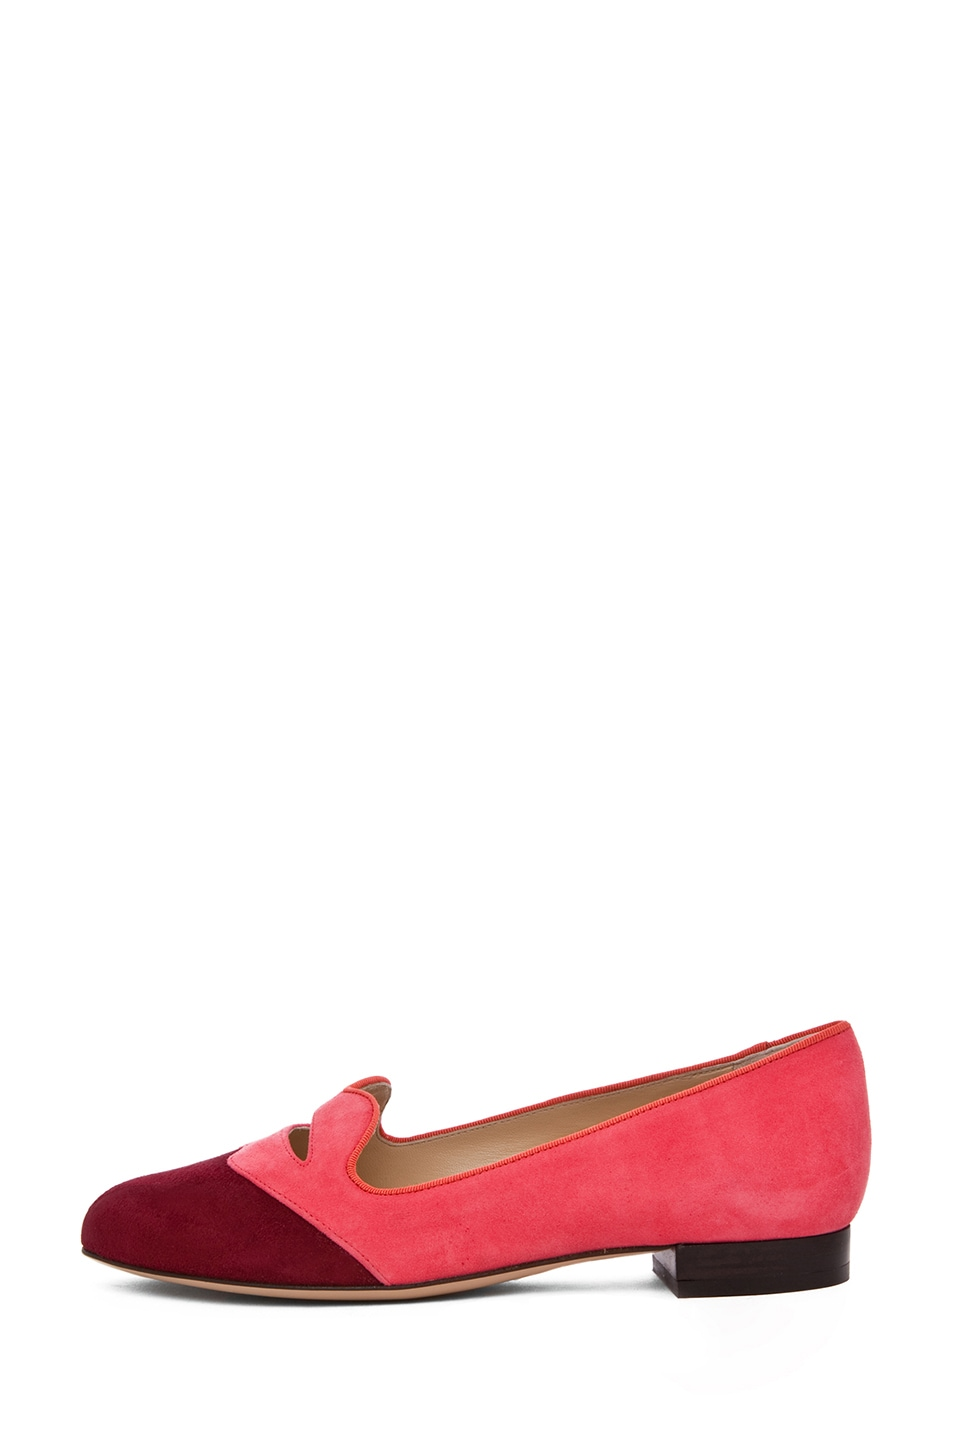 Image 1 of Charlotte Olympia Bisoux Suede Flats in Watermelon & Burgundy